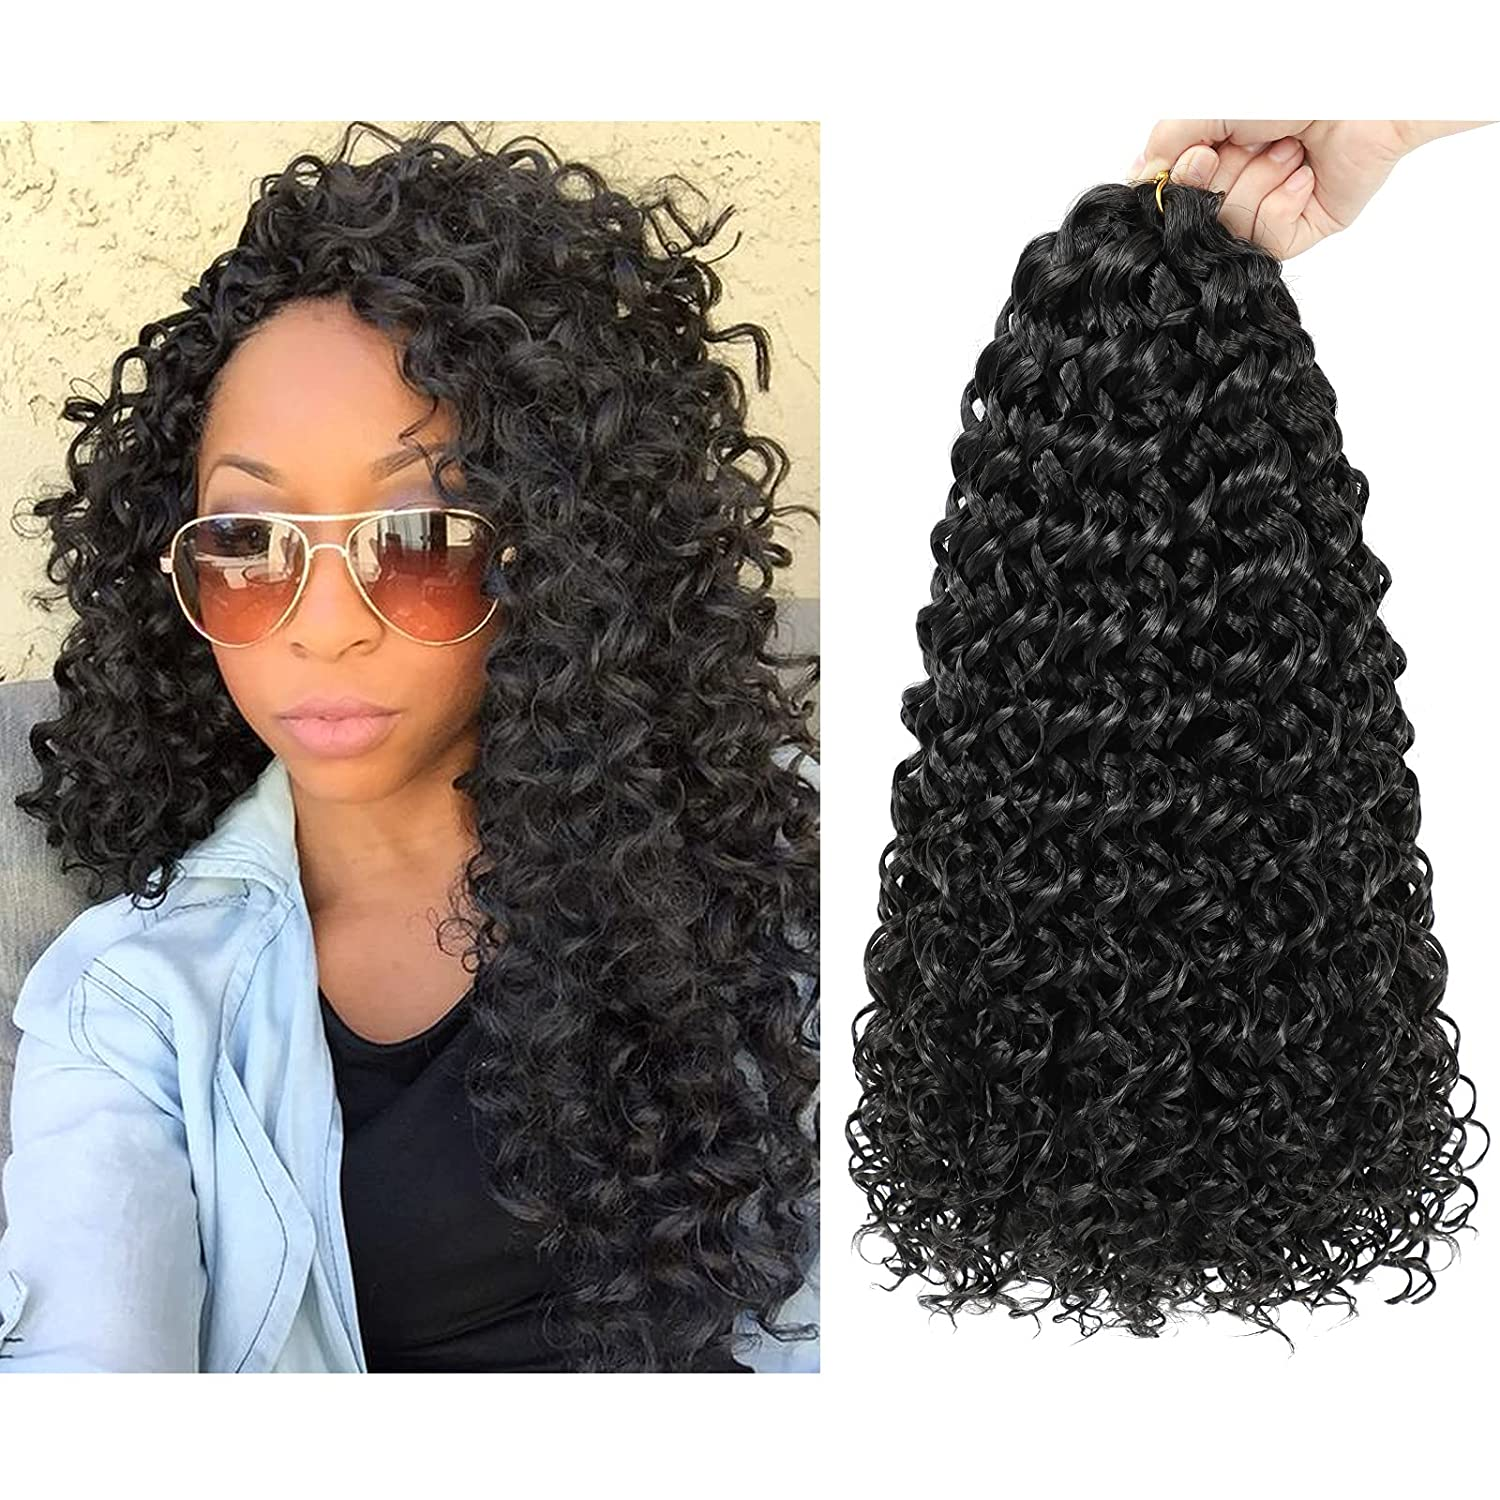 Dansama GoGo NEW Curl Crochet Braids Syntheti Max 71% OFF for Wave Water